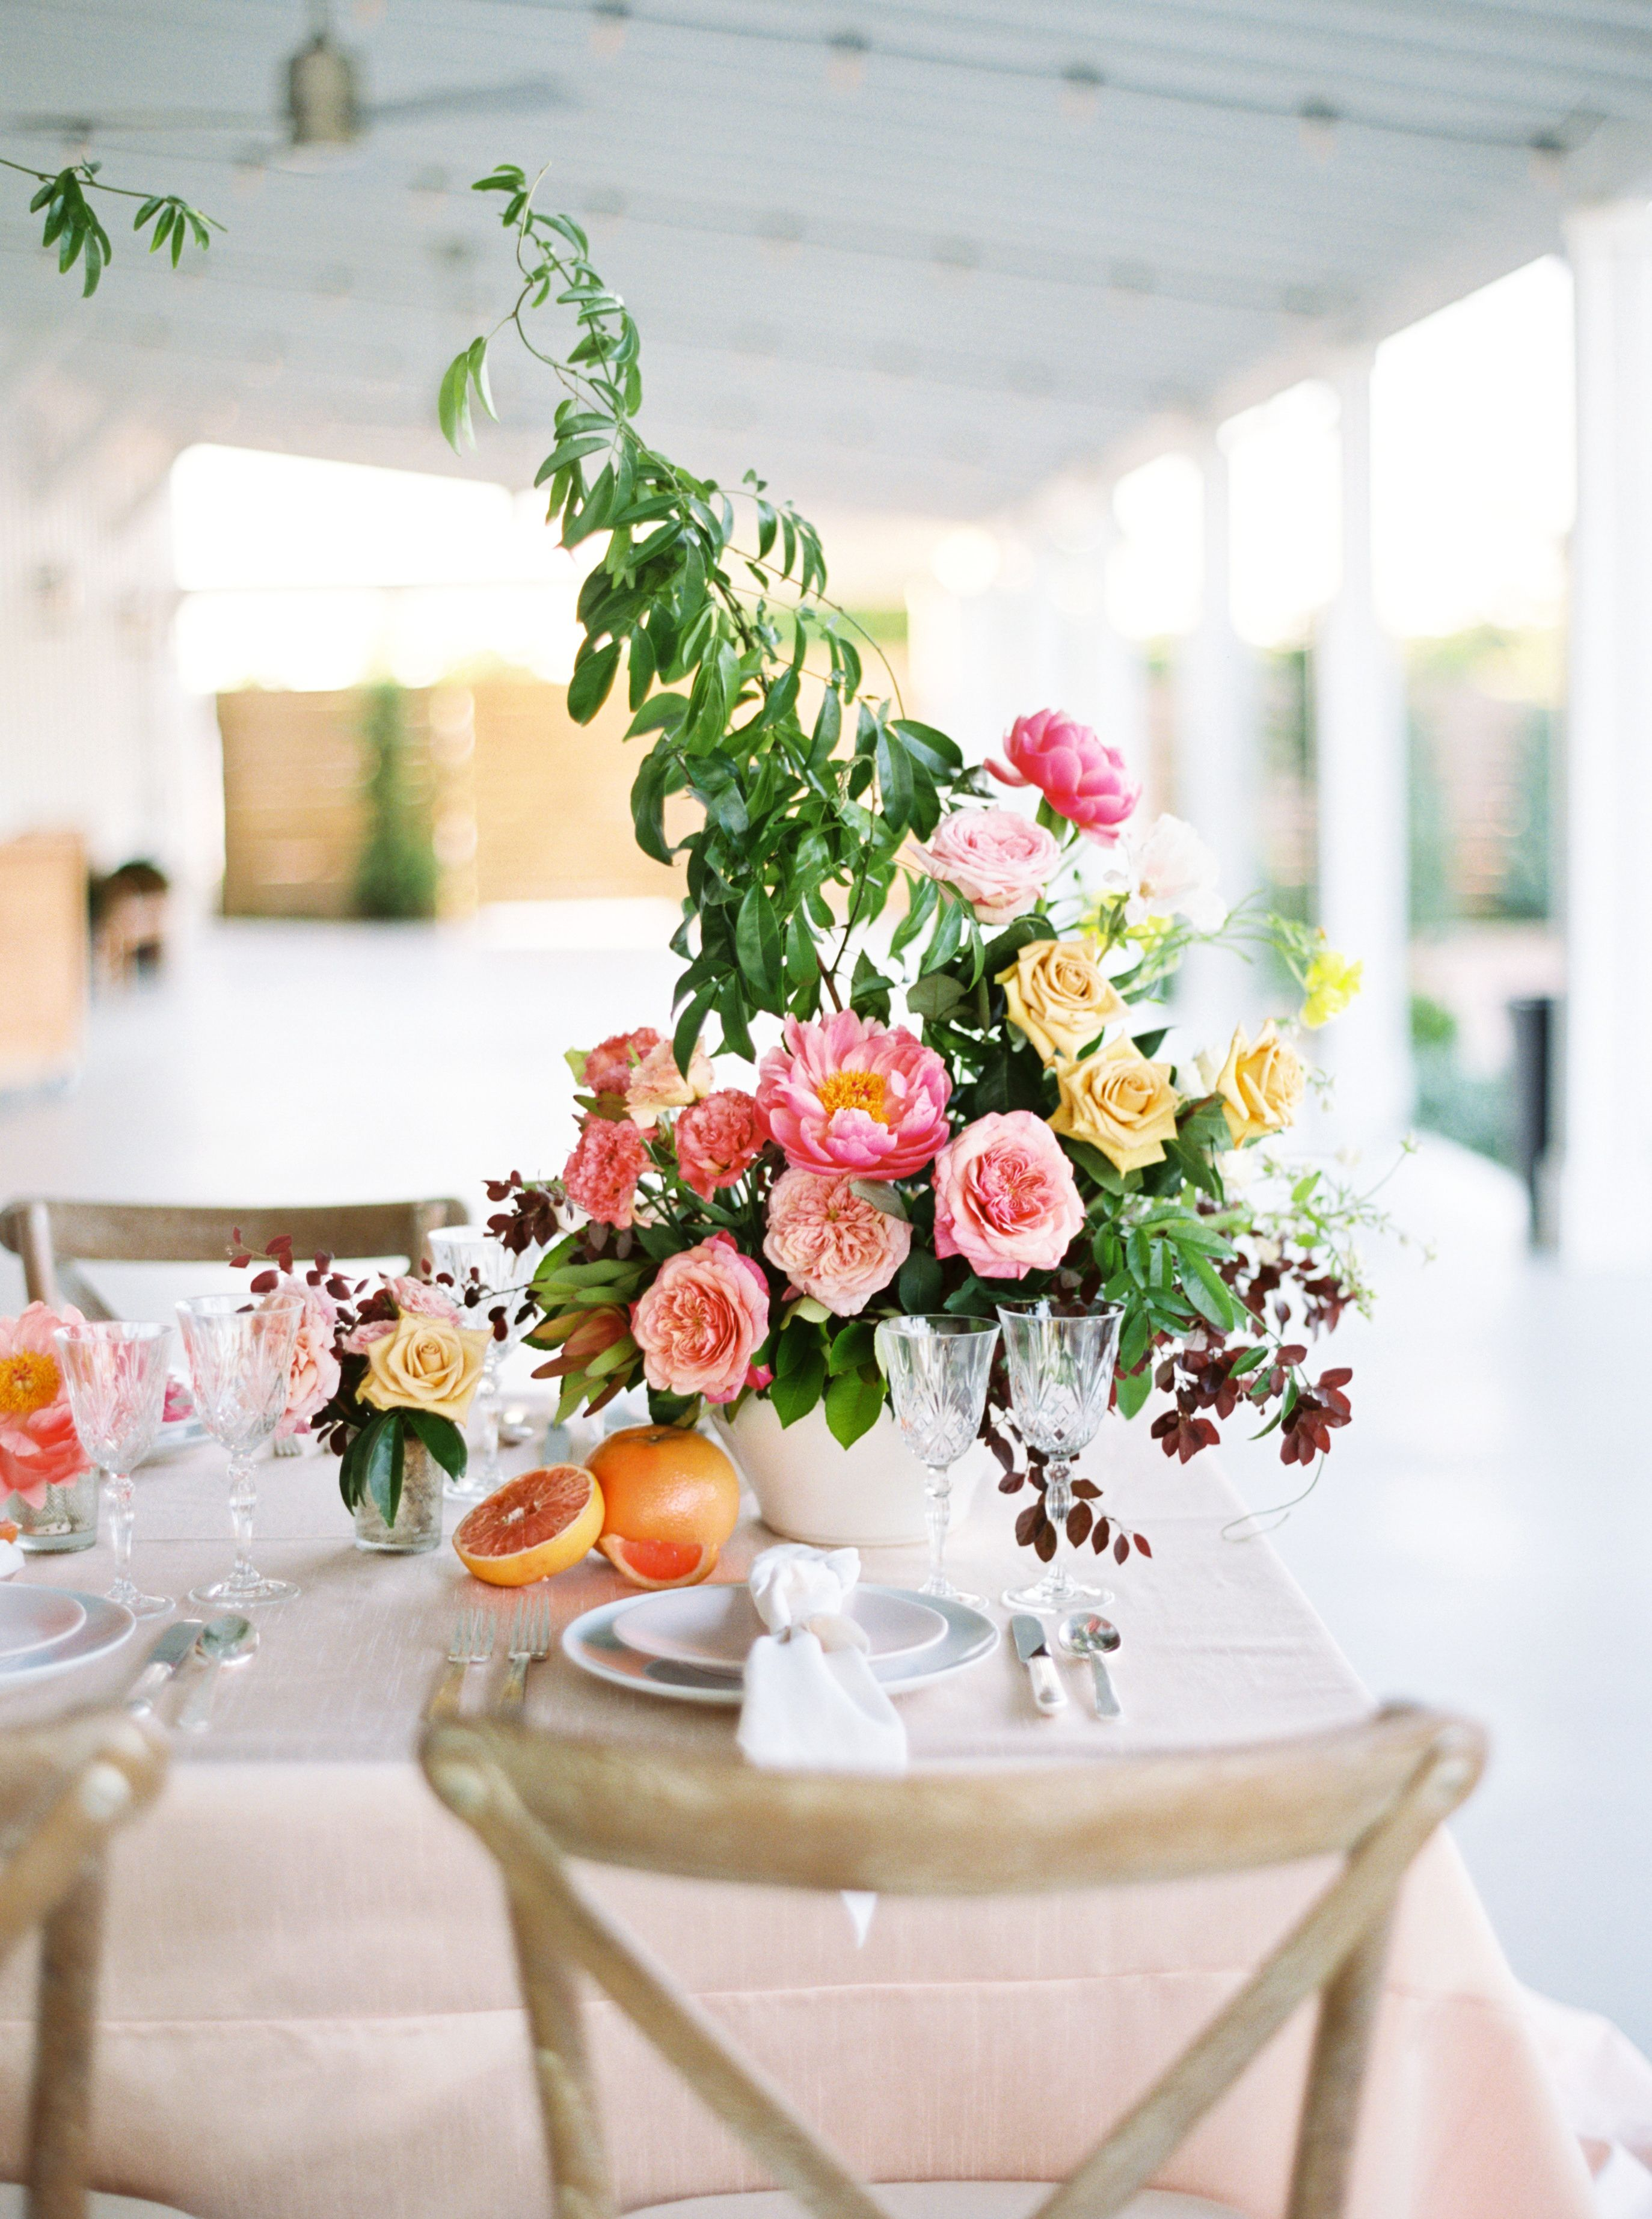 The Prettiest Summer Color Palette at The Farmhouse in